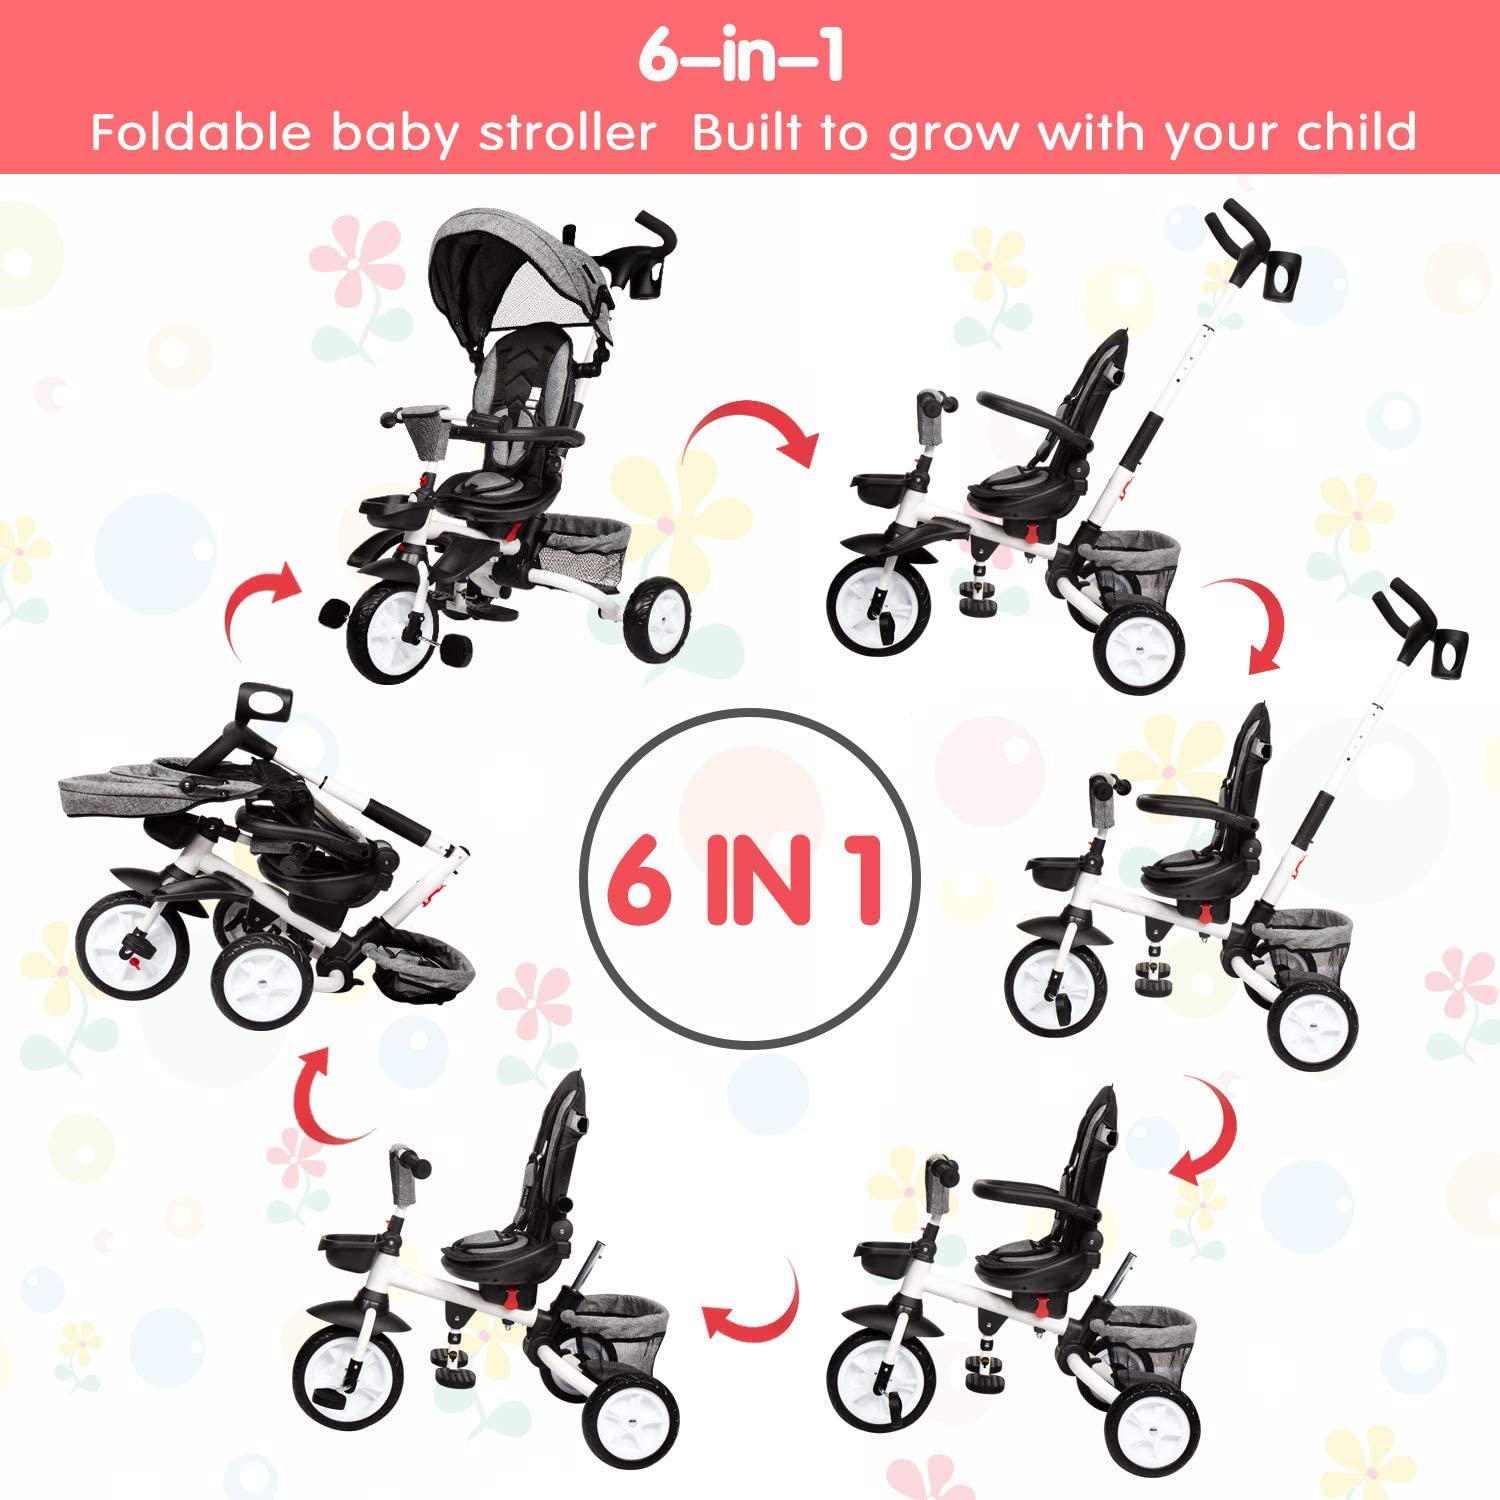 Detachable Guardrail Adjustable Canopy 6-in-1 Kids Tricycle with Adjustable Push Handle Baby Tricycle Foldable Steer Stroller for Toddler Boys and Girls Safety Harness